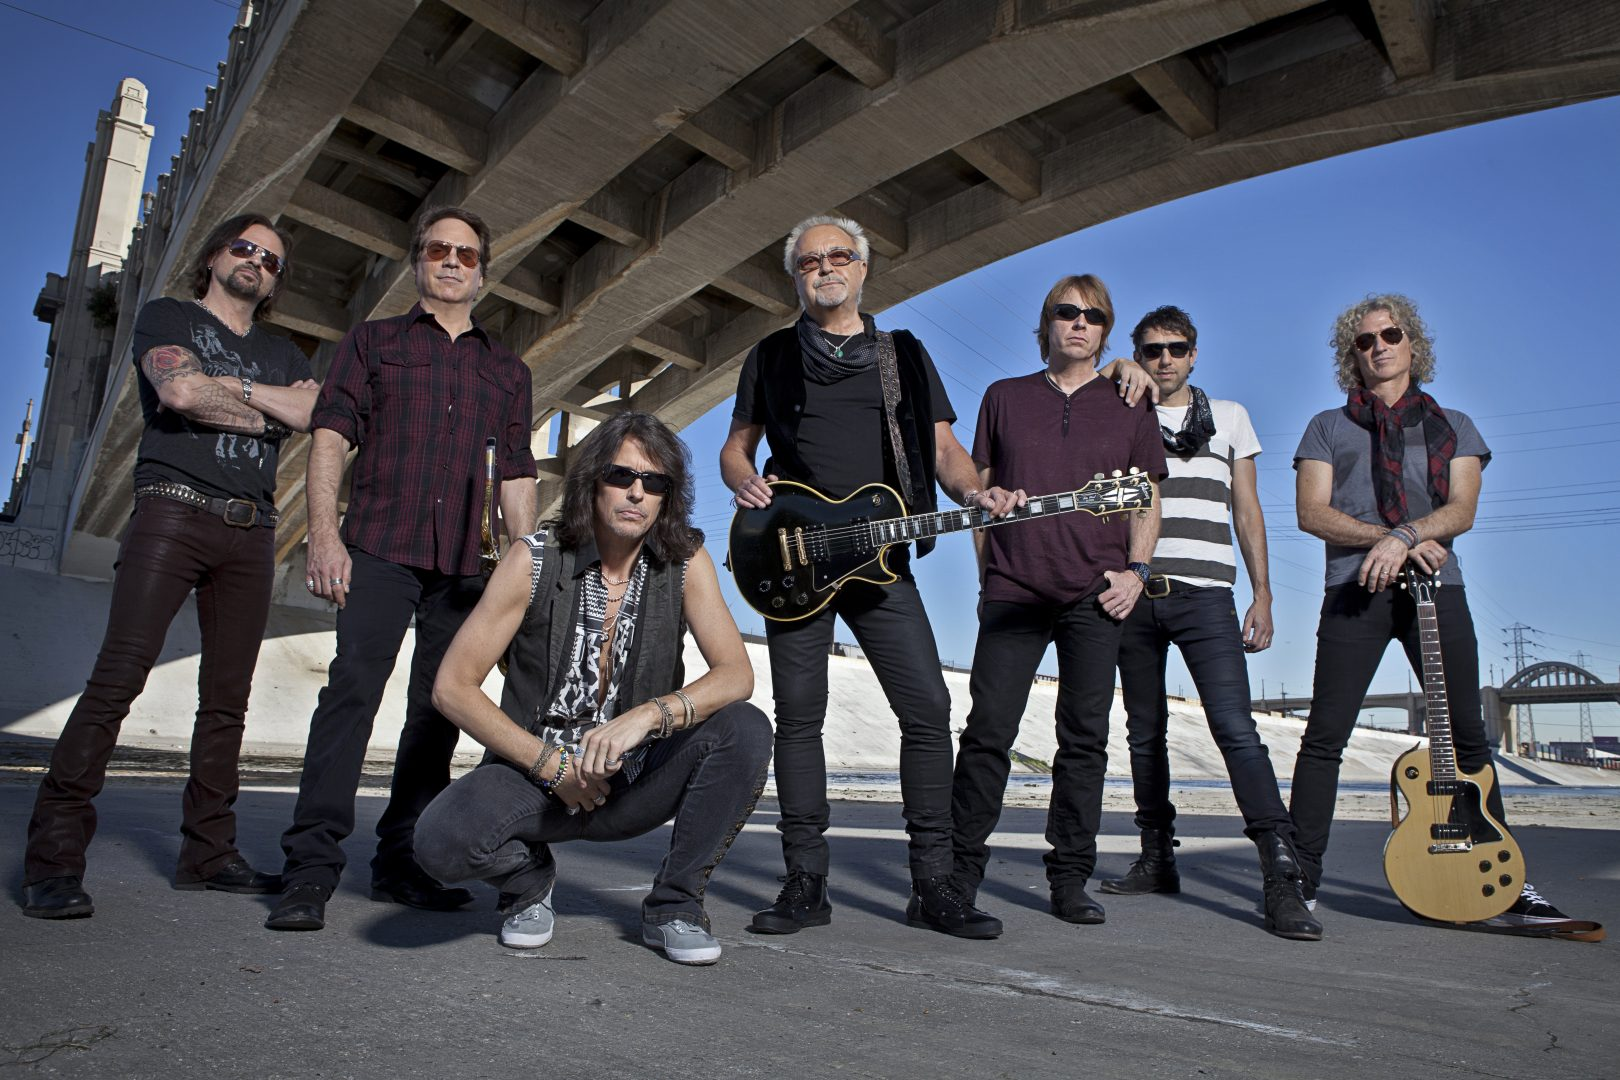 FEATURED ARTIST – Foreigner